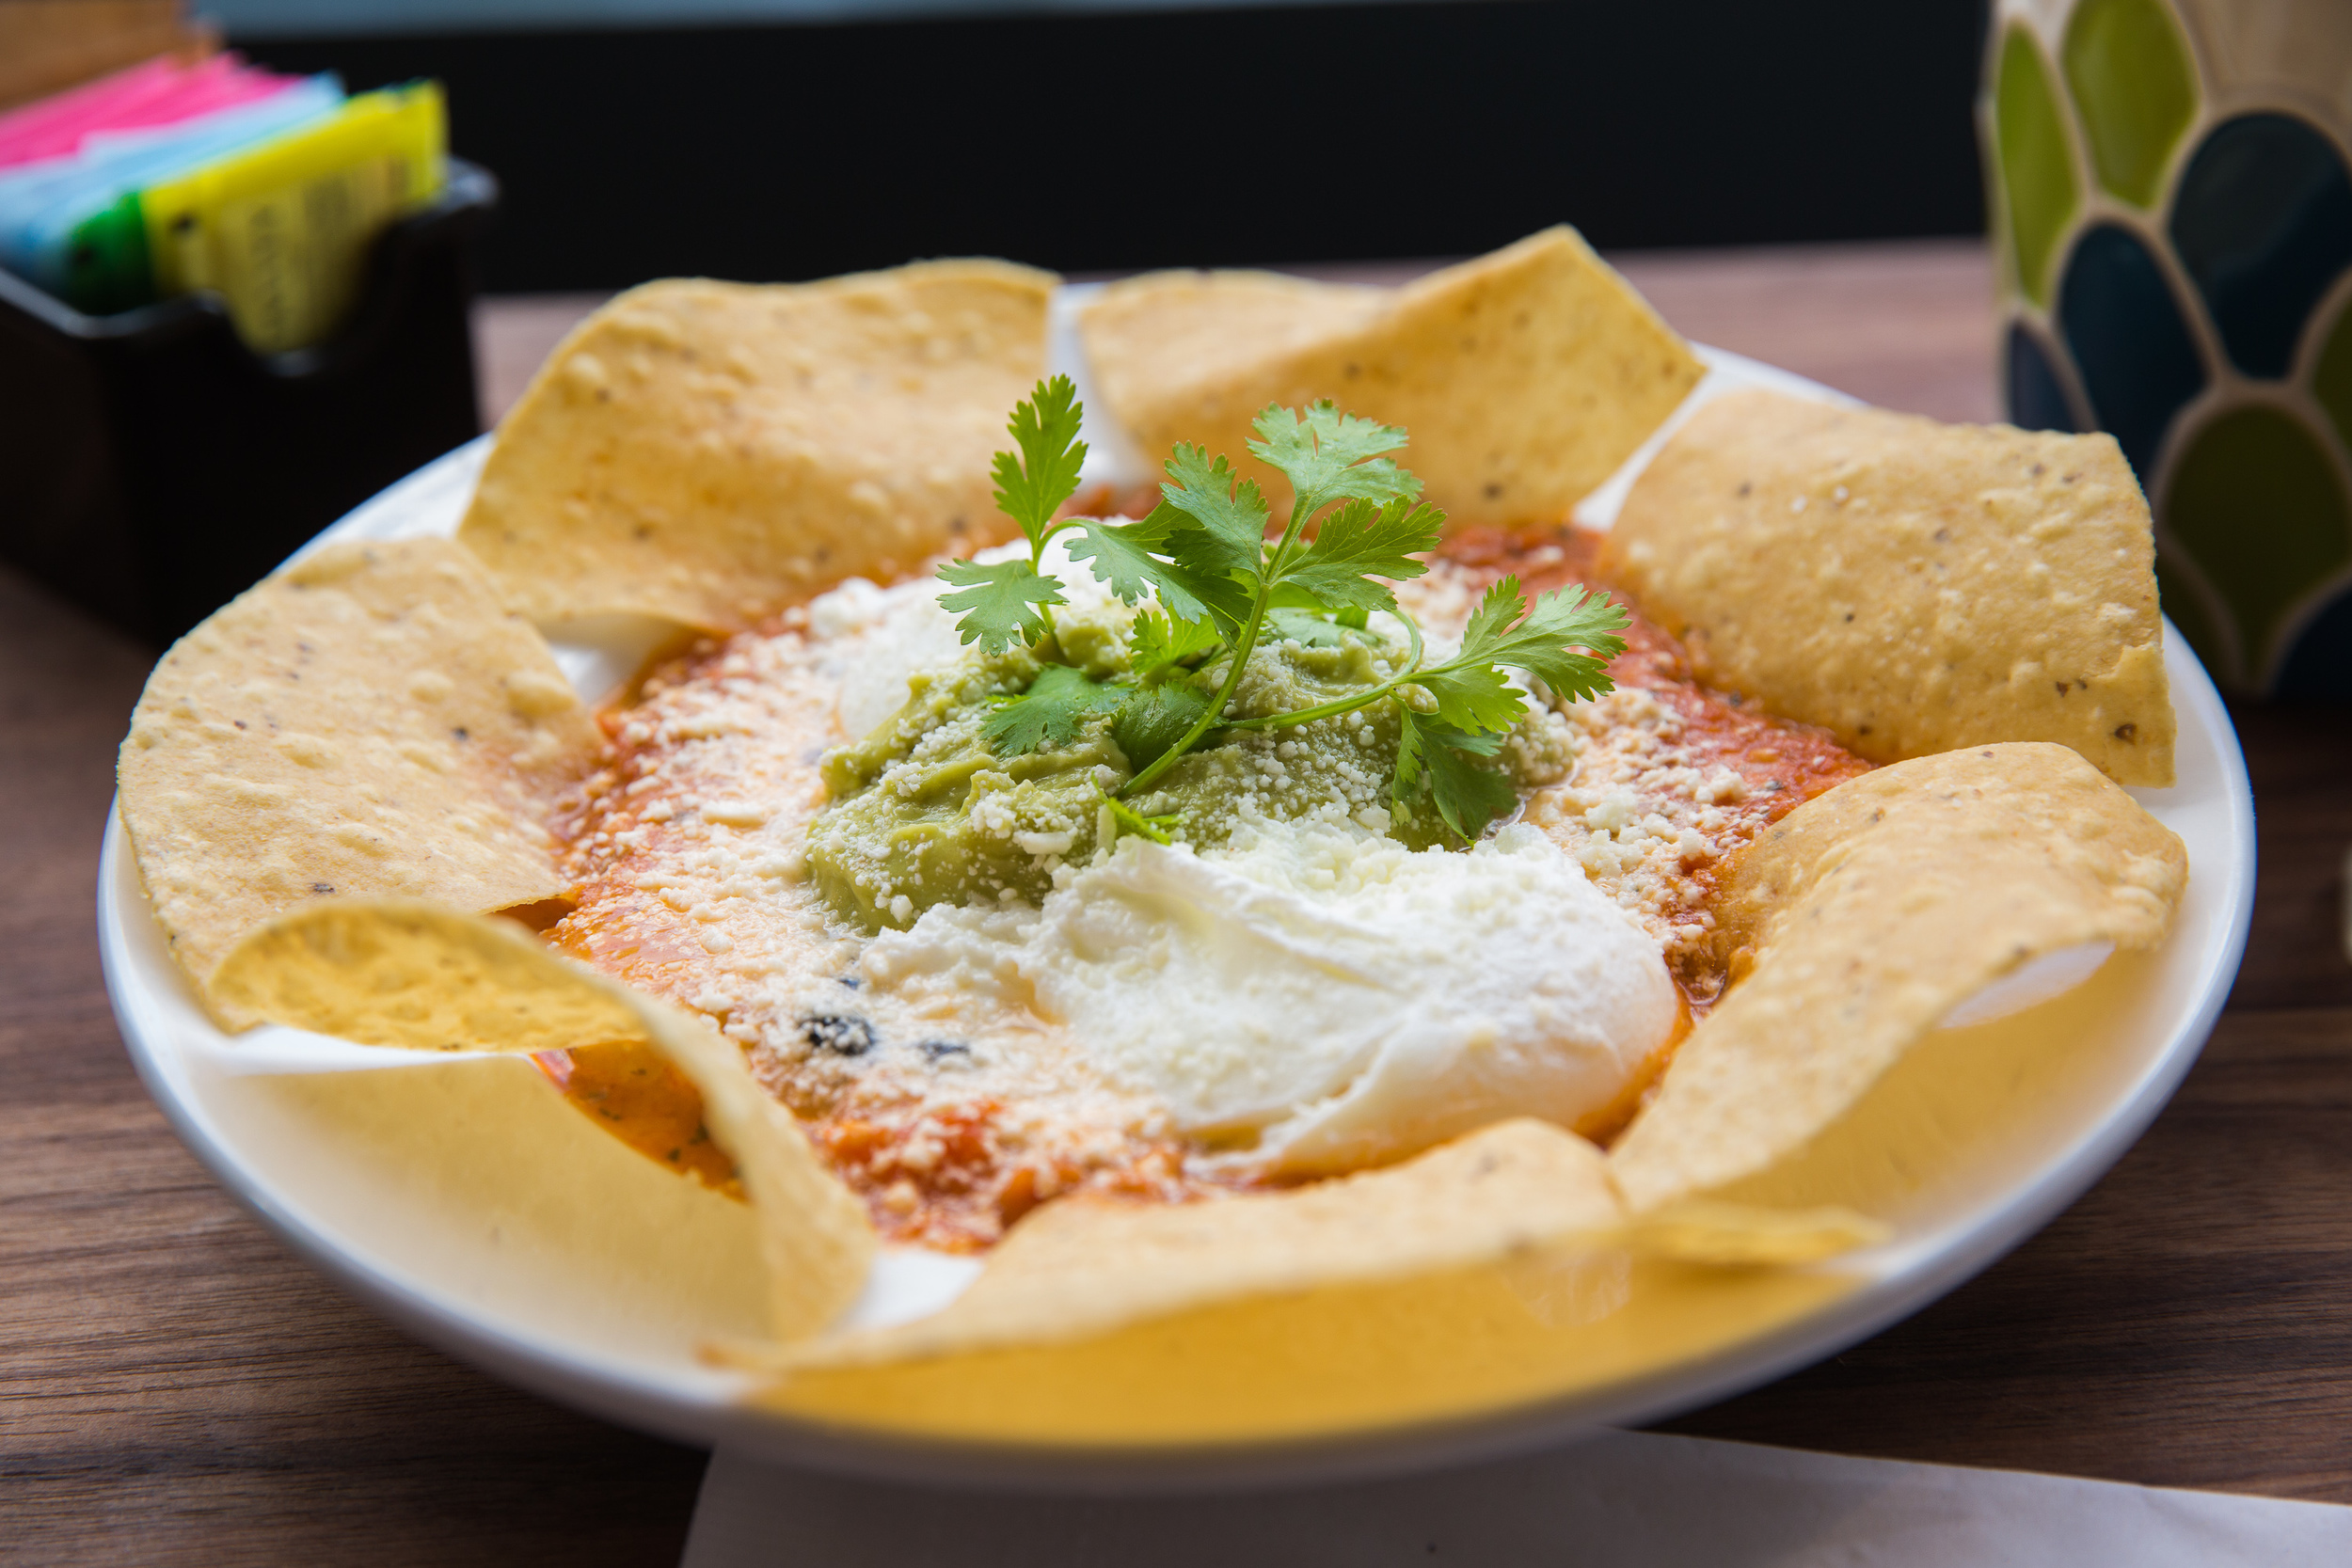 Huevos Rancheros - Poached Eggs, Salsa, Avocado Mousse, Black Beans, Cheddar & Cotila Cheese, Tortilla Chips